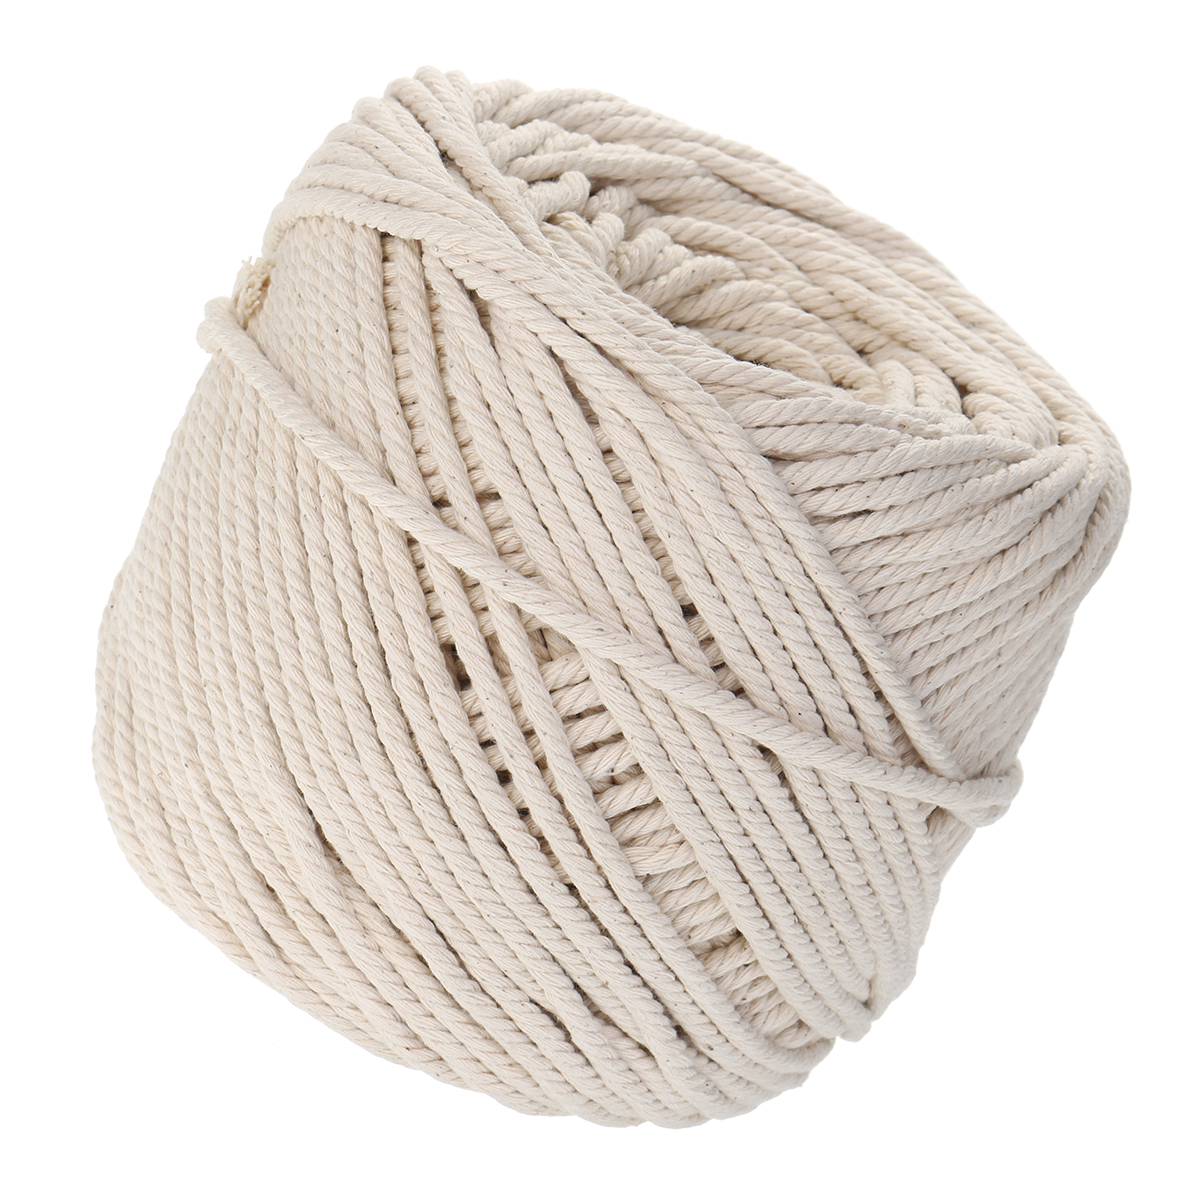 10 Roll 125M 4 Strands Natural Braided Twisted Cotton Cord Rope Craft Macrame Multifunctional Tools